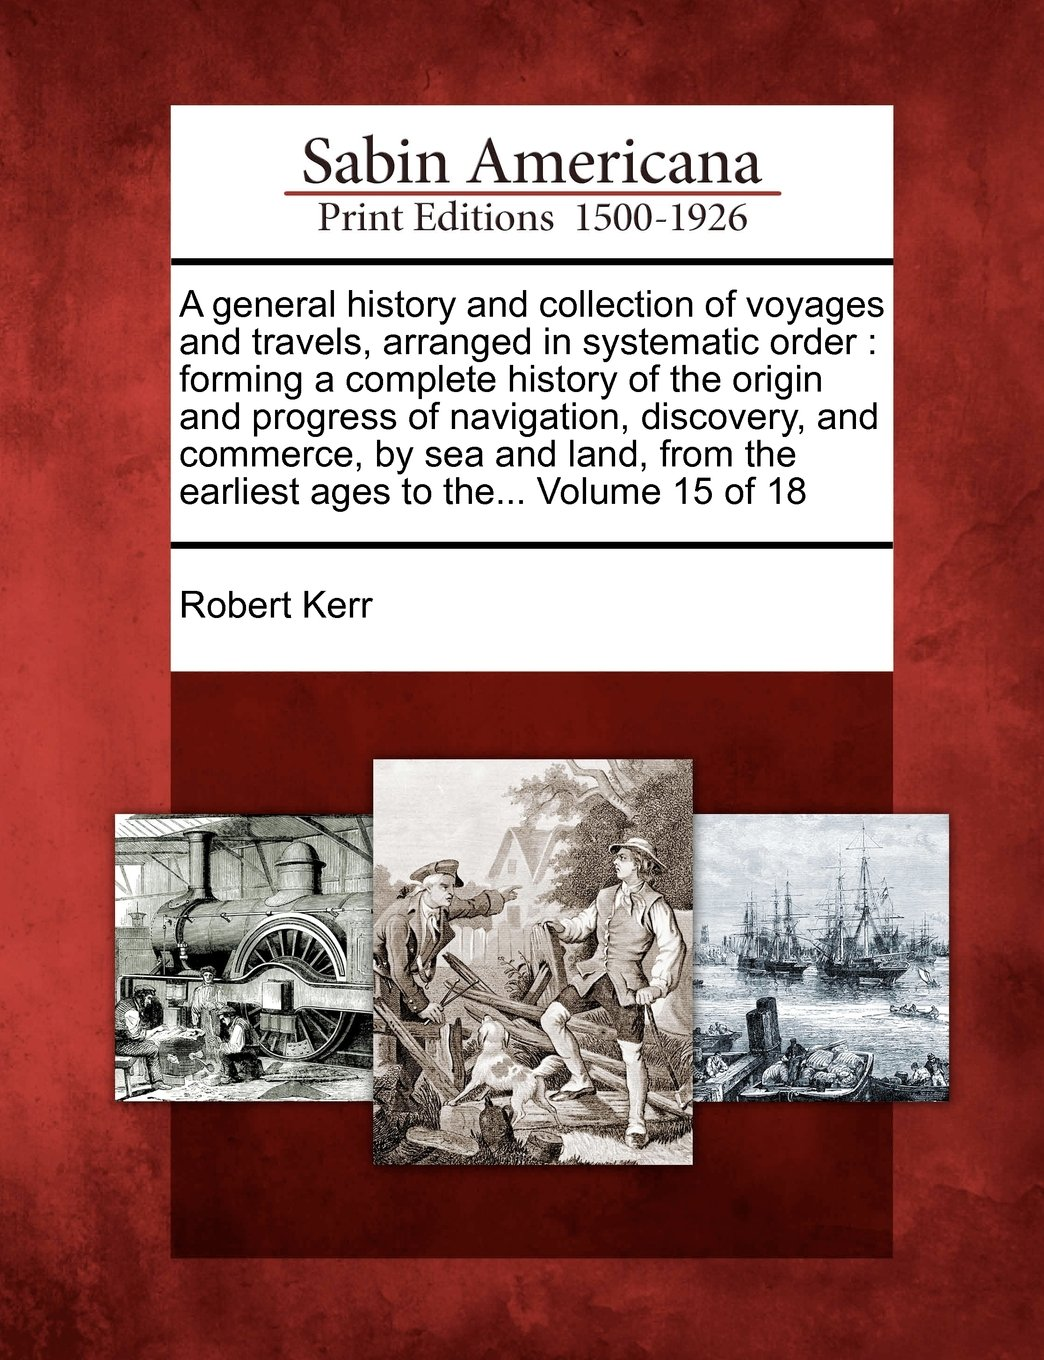 Read Online A general history and collection of voyages and travels, arranged in systematic order: forming a complete history of the origin and progress of ... the earliest ages to the... Volume 15 of 18 ePub fb2 ebook